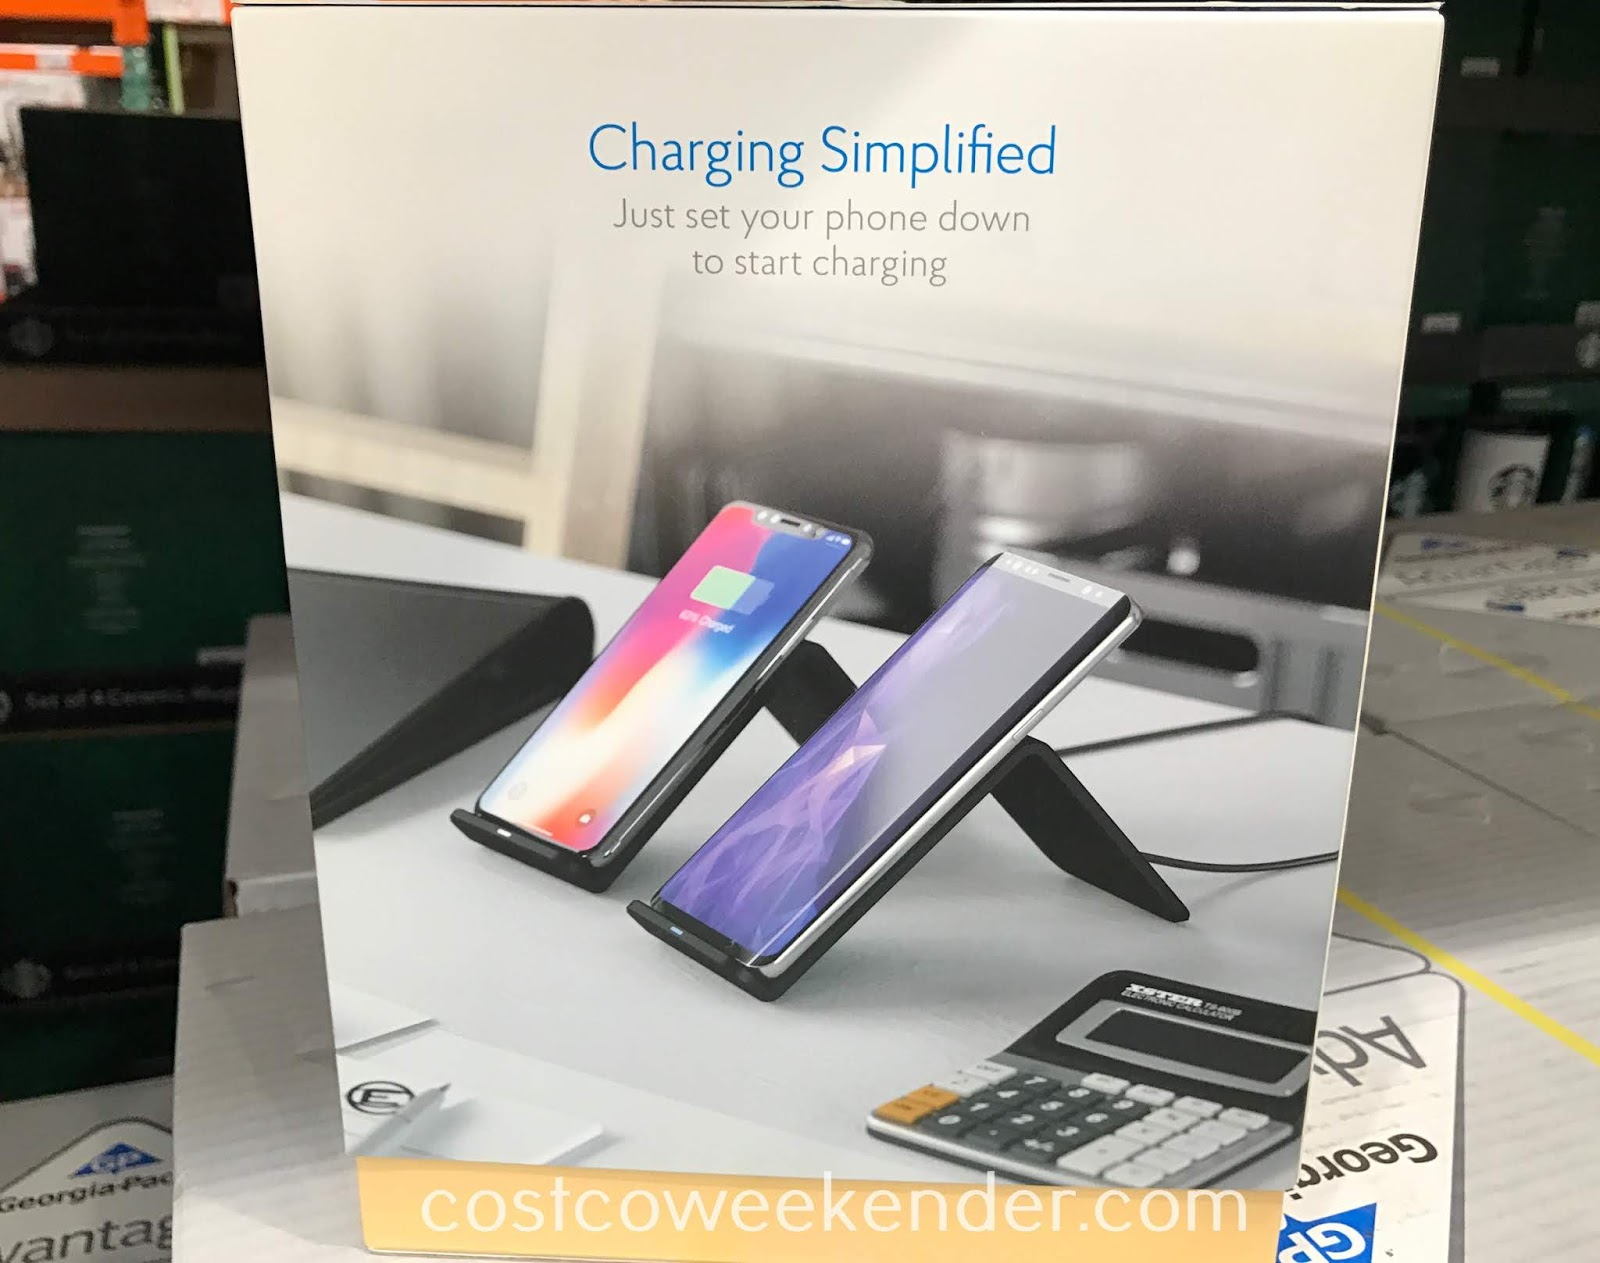 Costco 1242813 - Atomi Qi Wireless Charging Stands: leave one at the office and one at home